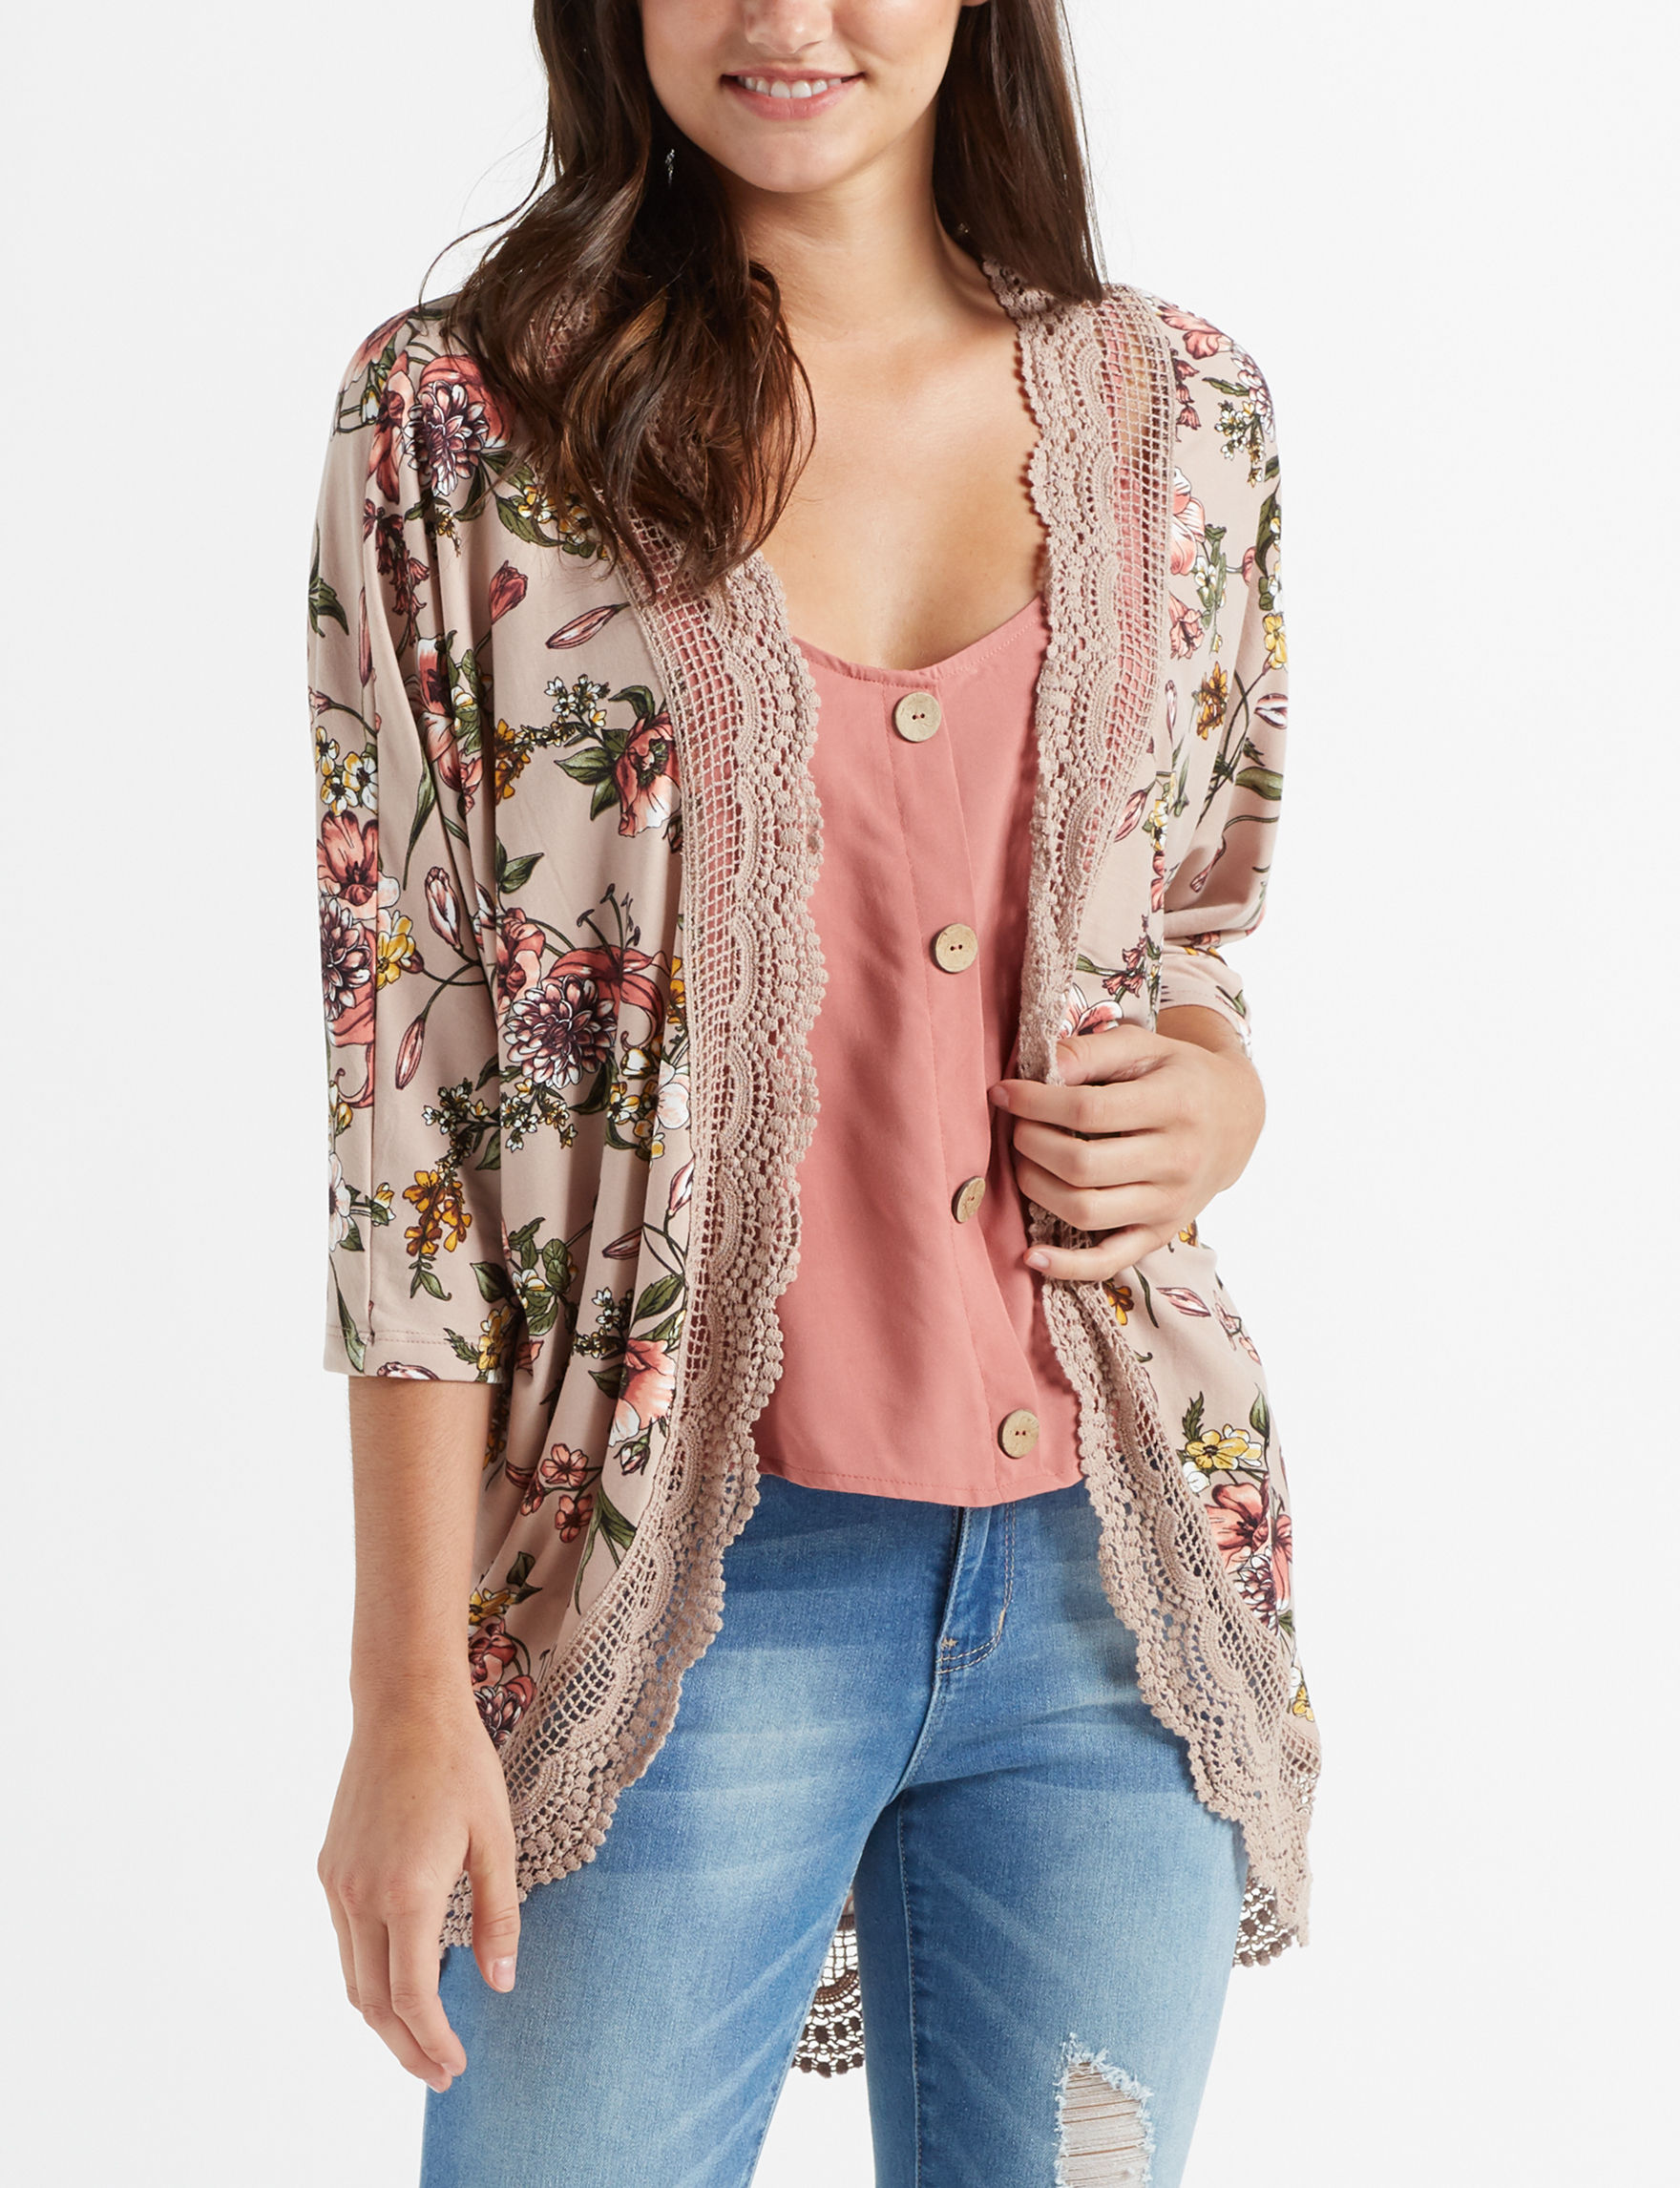 Justify Taupe Kimonos & Toppers